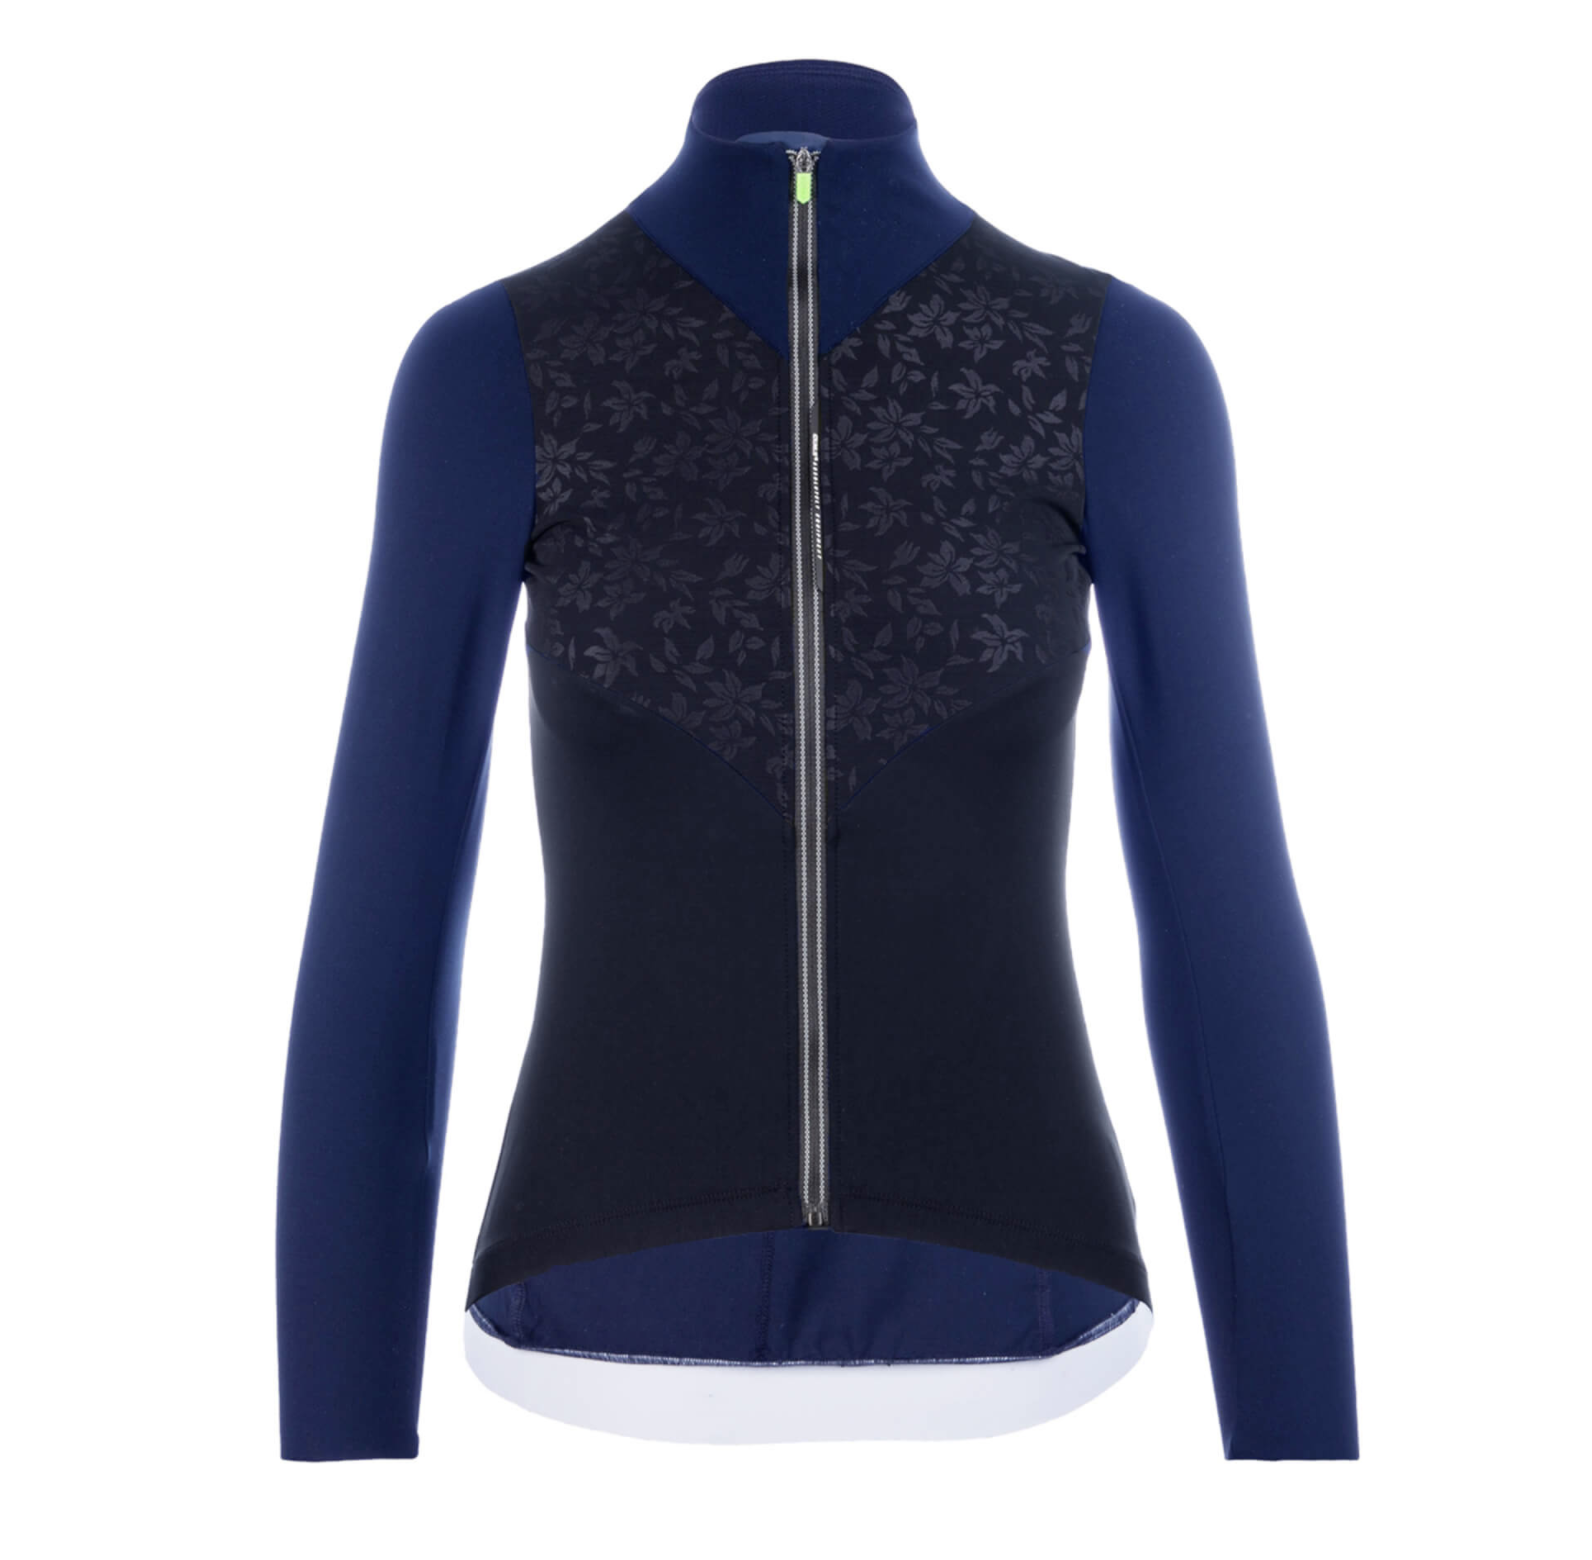 Q36.5 WOMENS JERSEY LONG SLEEVE NAVY LACE